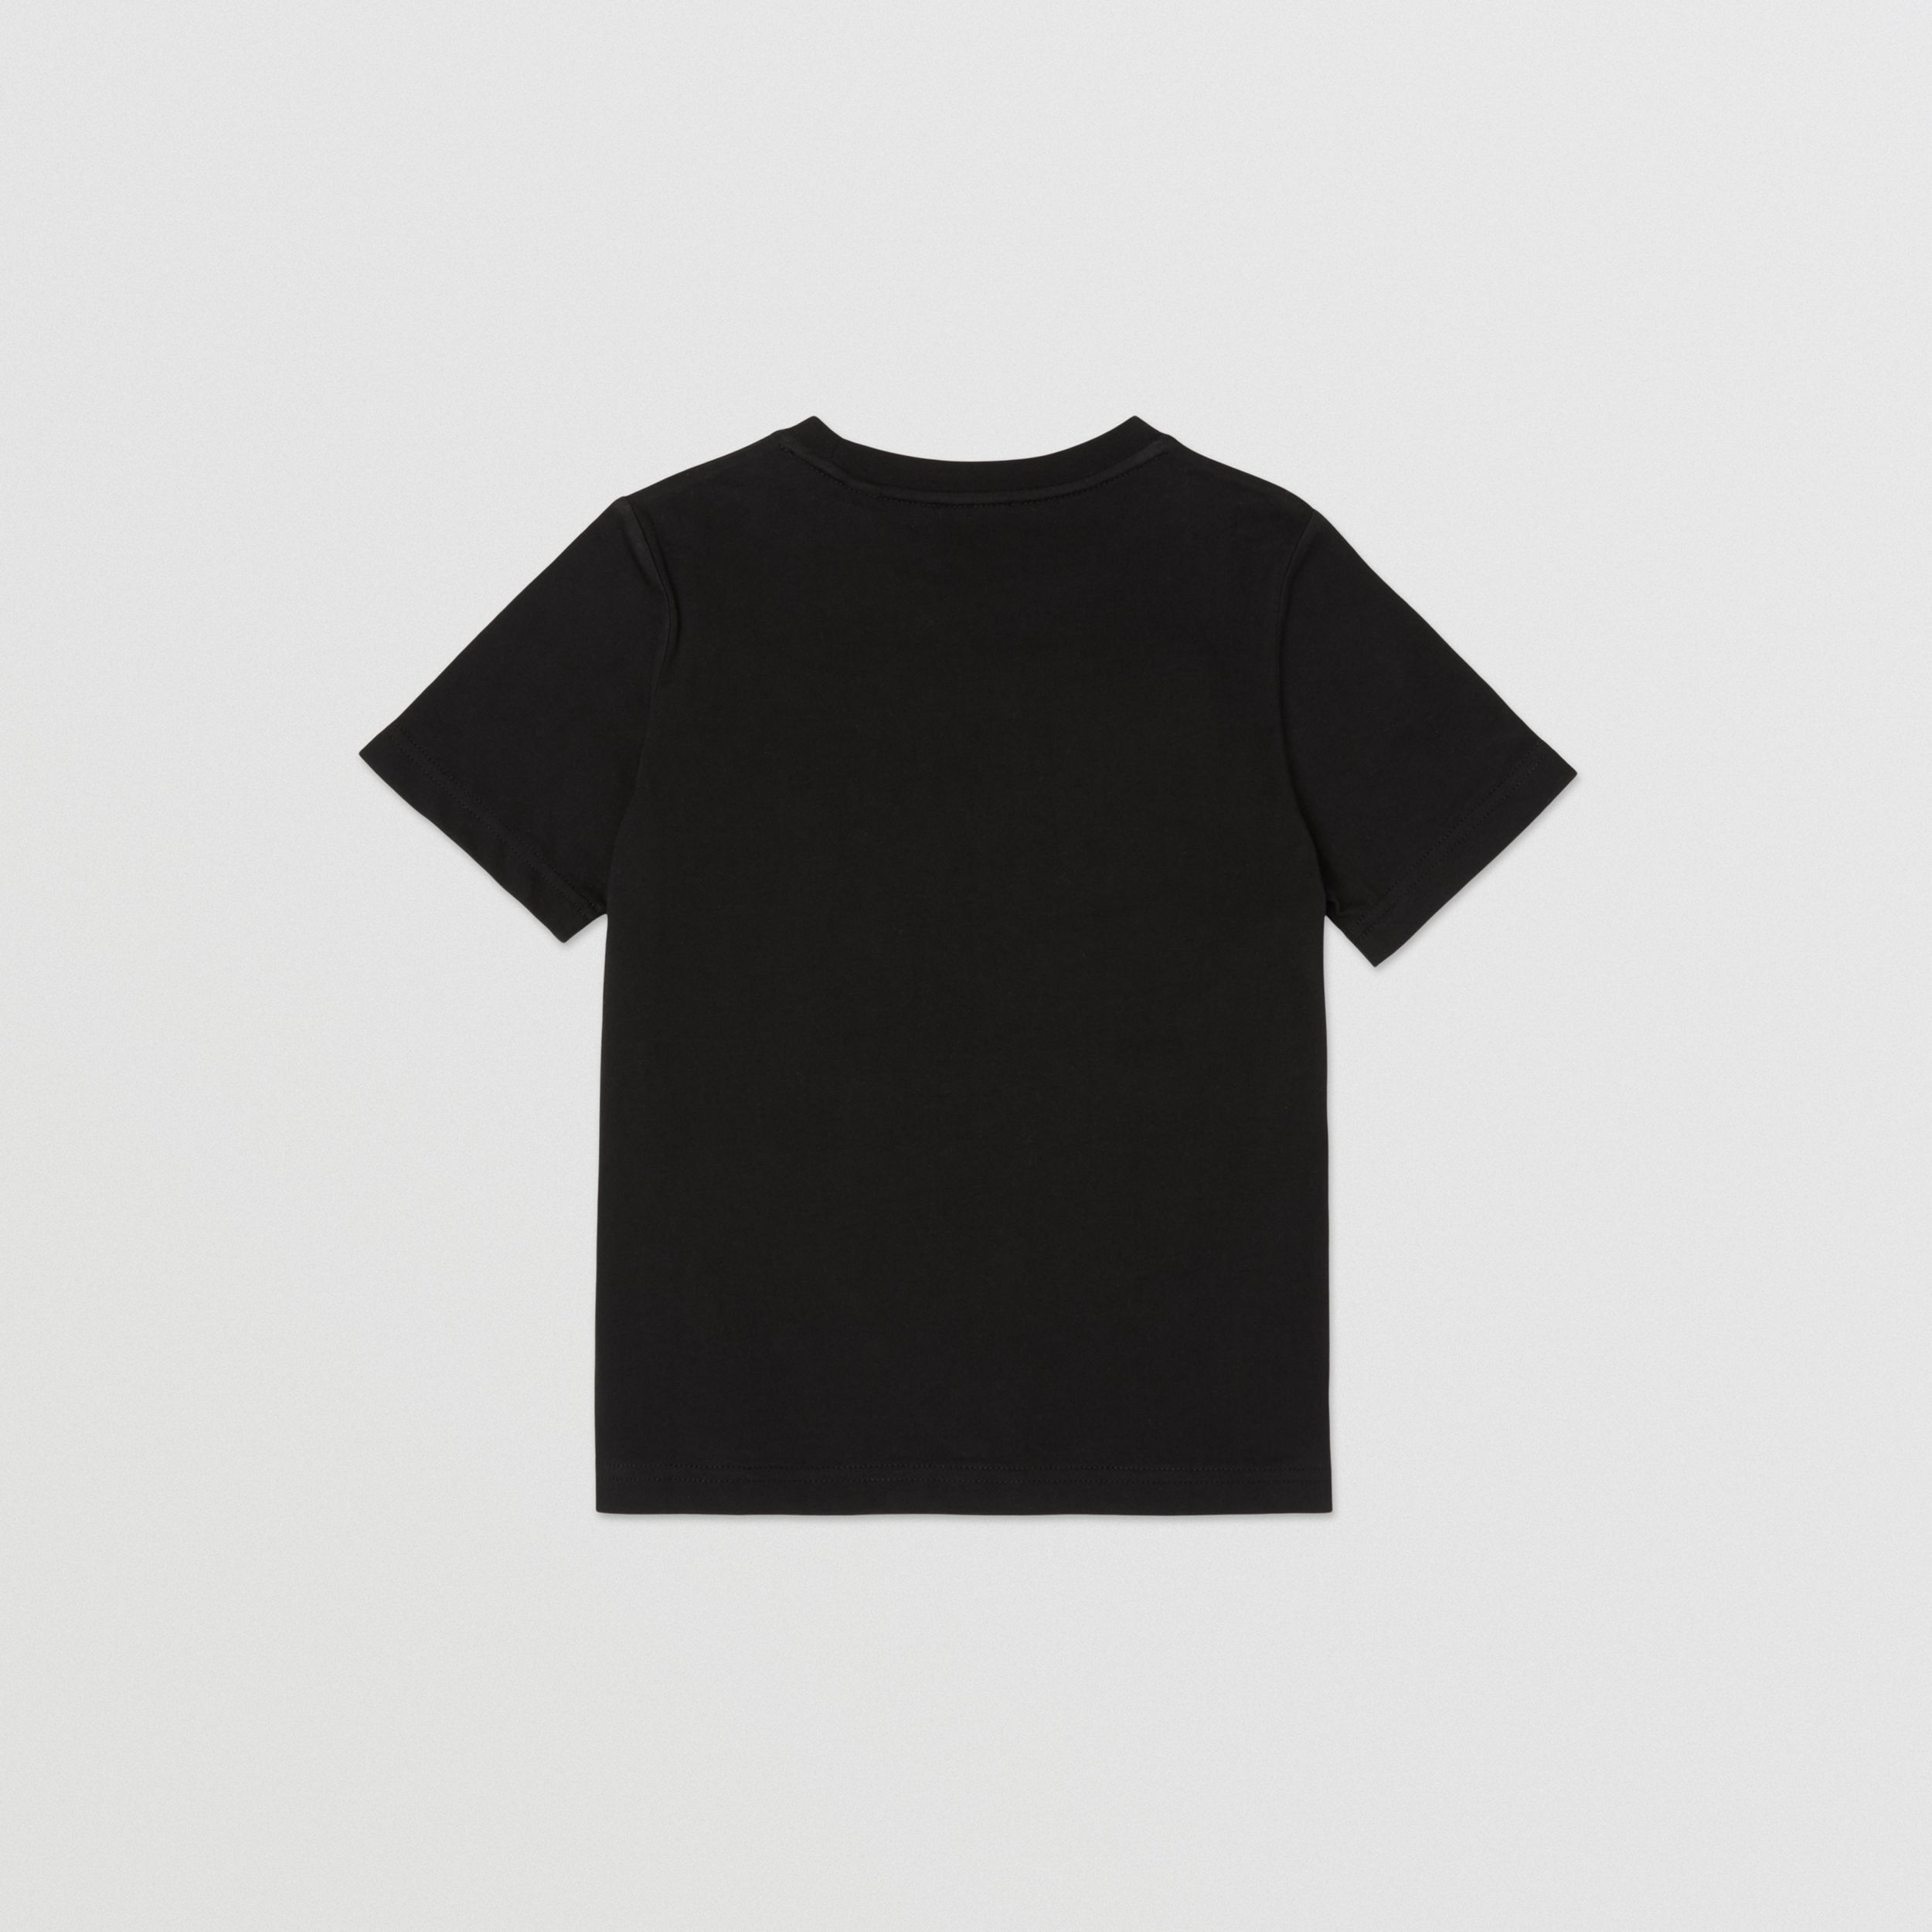 Coordinates Print Cotton T-shirt in Black | Burberry - 4